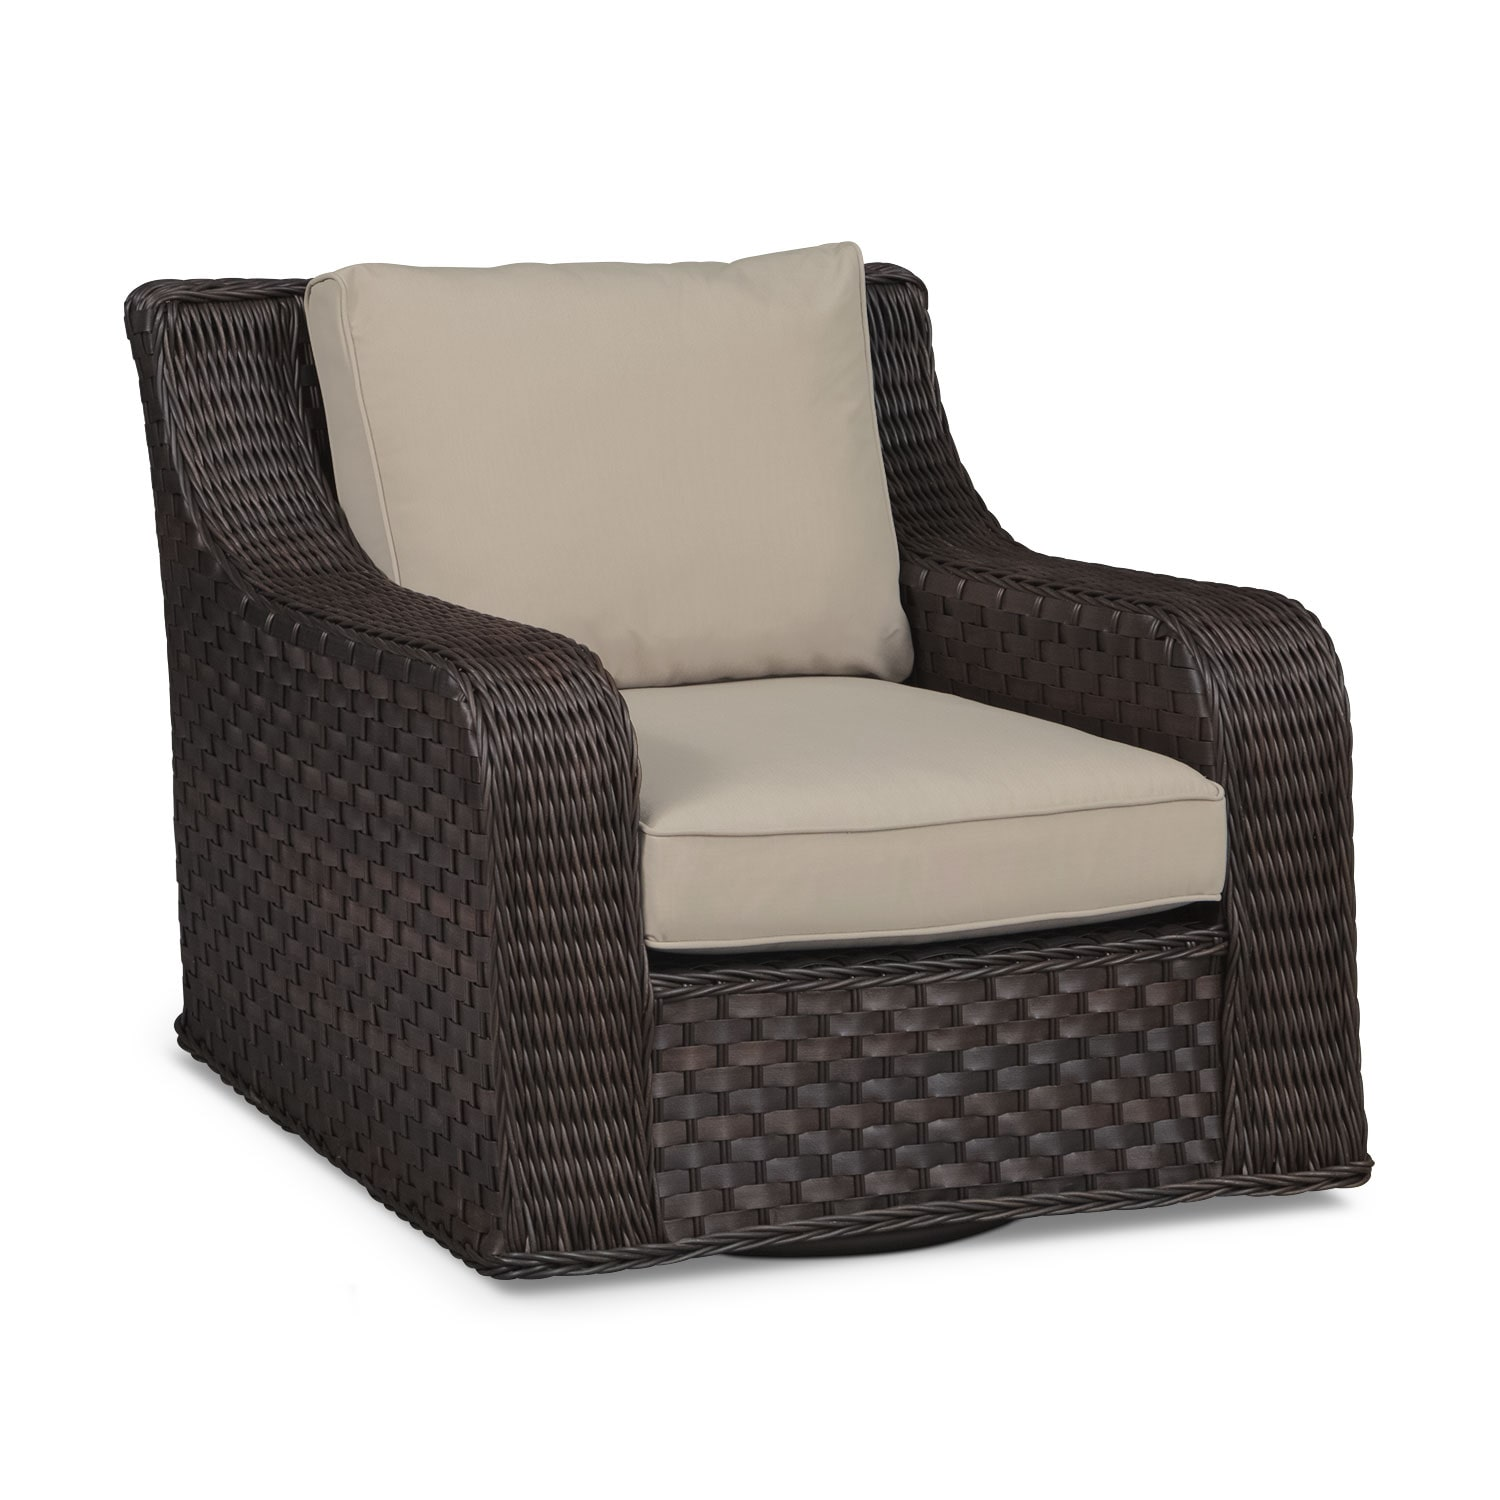 Outdoor Furniture - Doral Outdoor Swivel Rocker